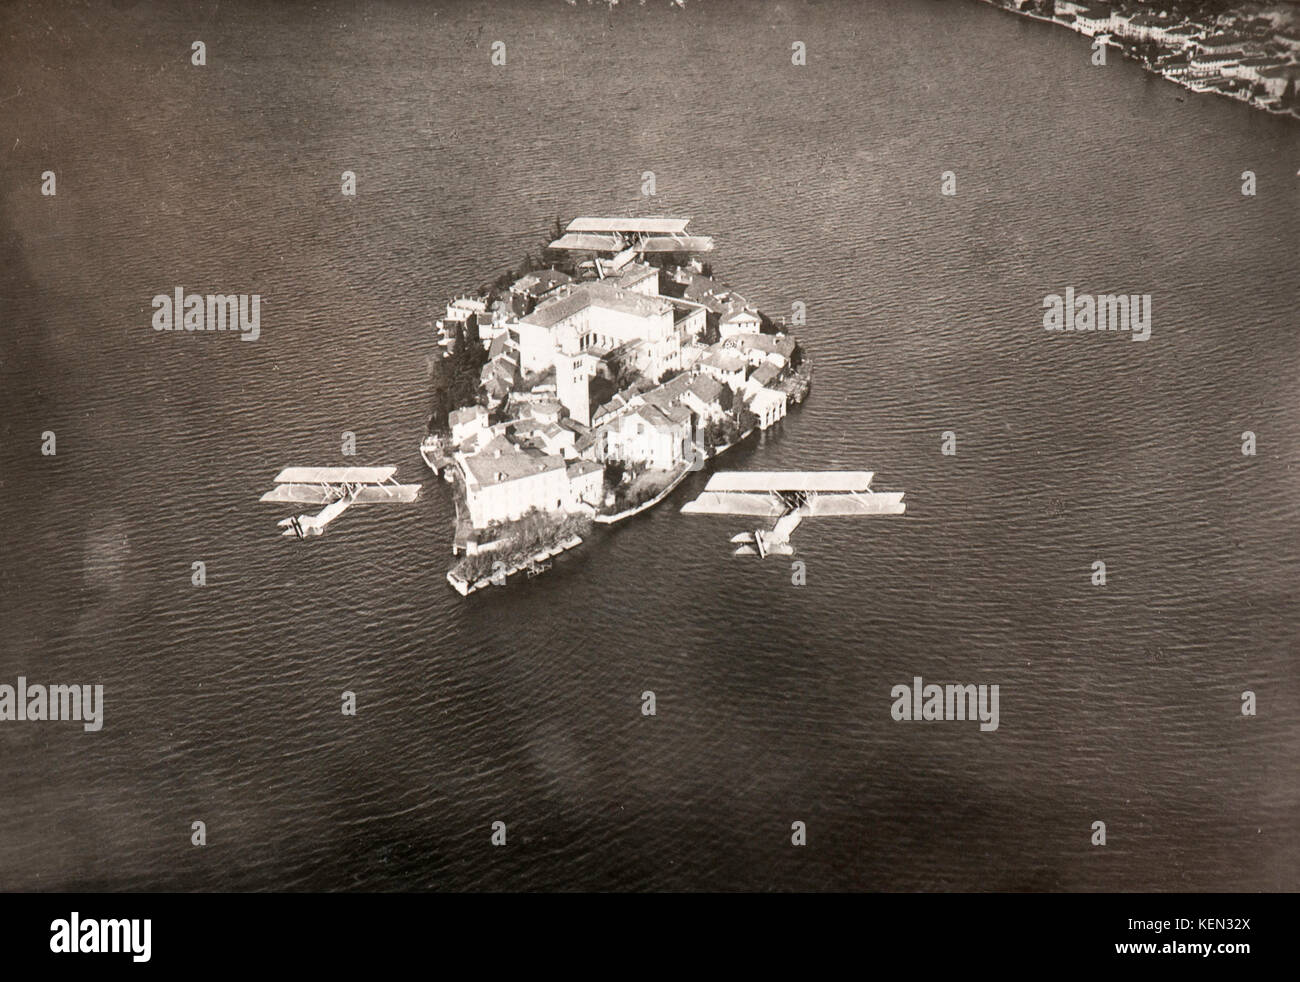 Formation of three bombers overflying Isola Bella, Lake Maggiore (Italy - 1930) - Stock Image